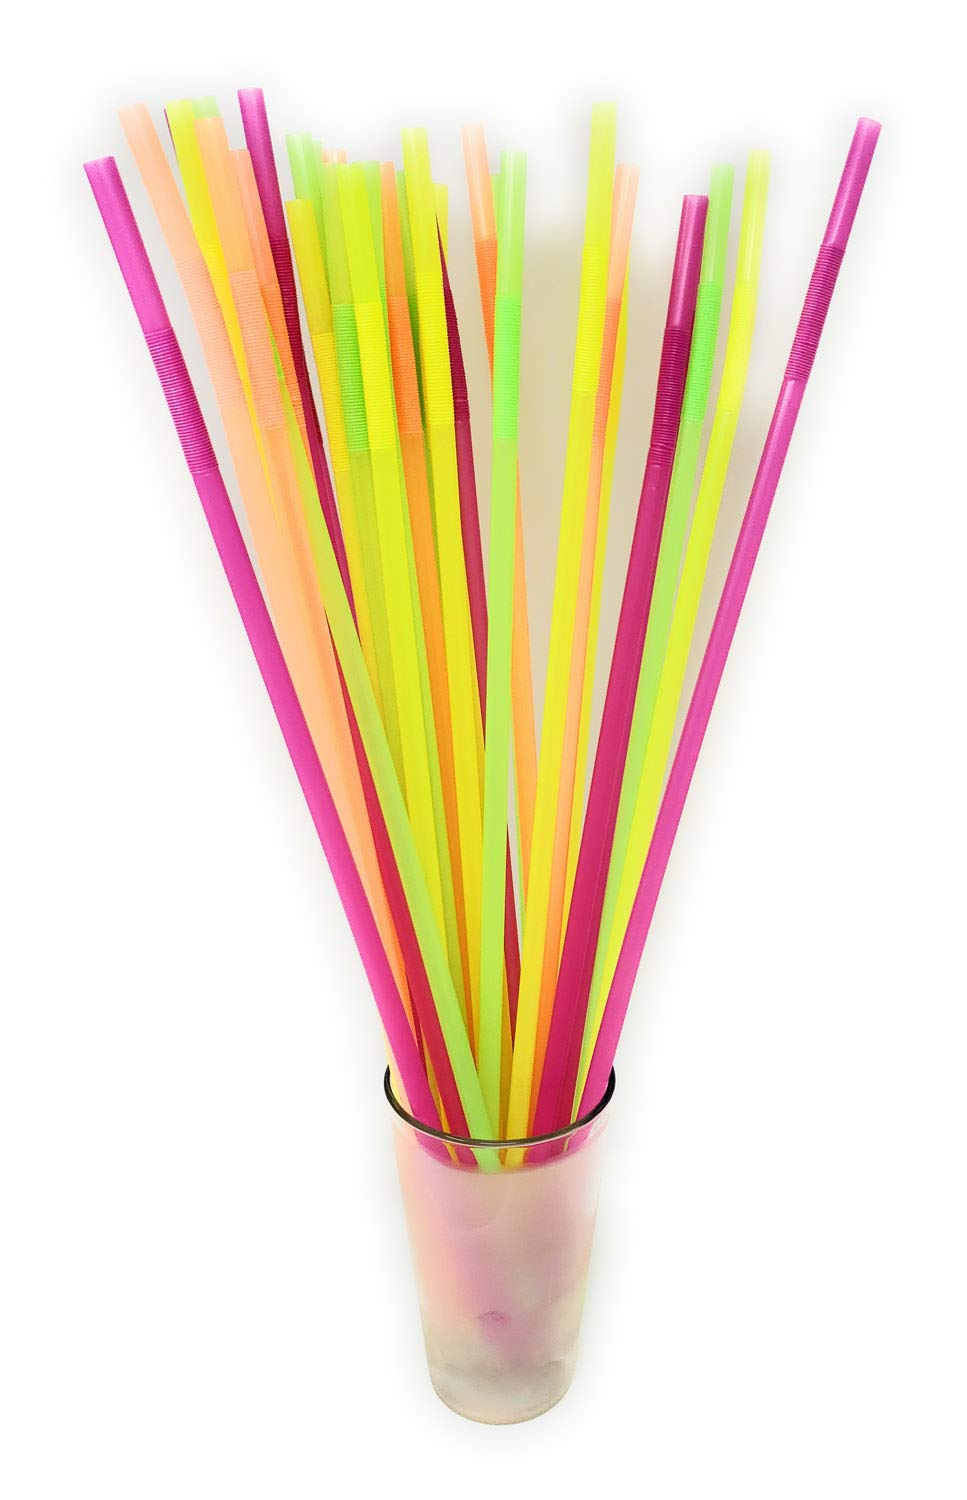 17 Long Flexible Neon Straws - Assorted Colors - 3 Packs of 200 (600 in Total!) by Barware